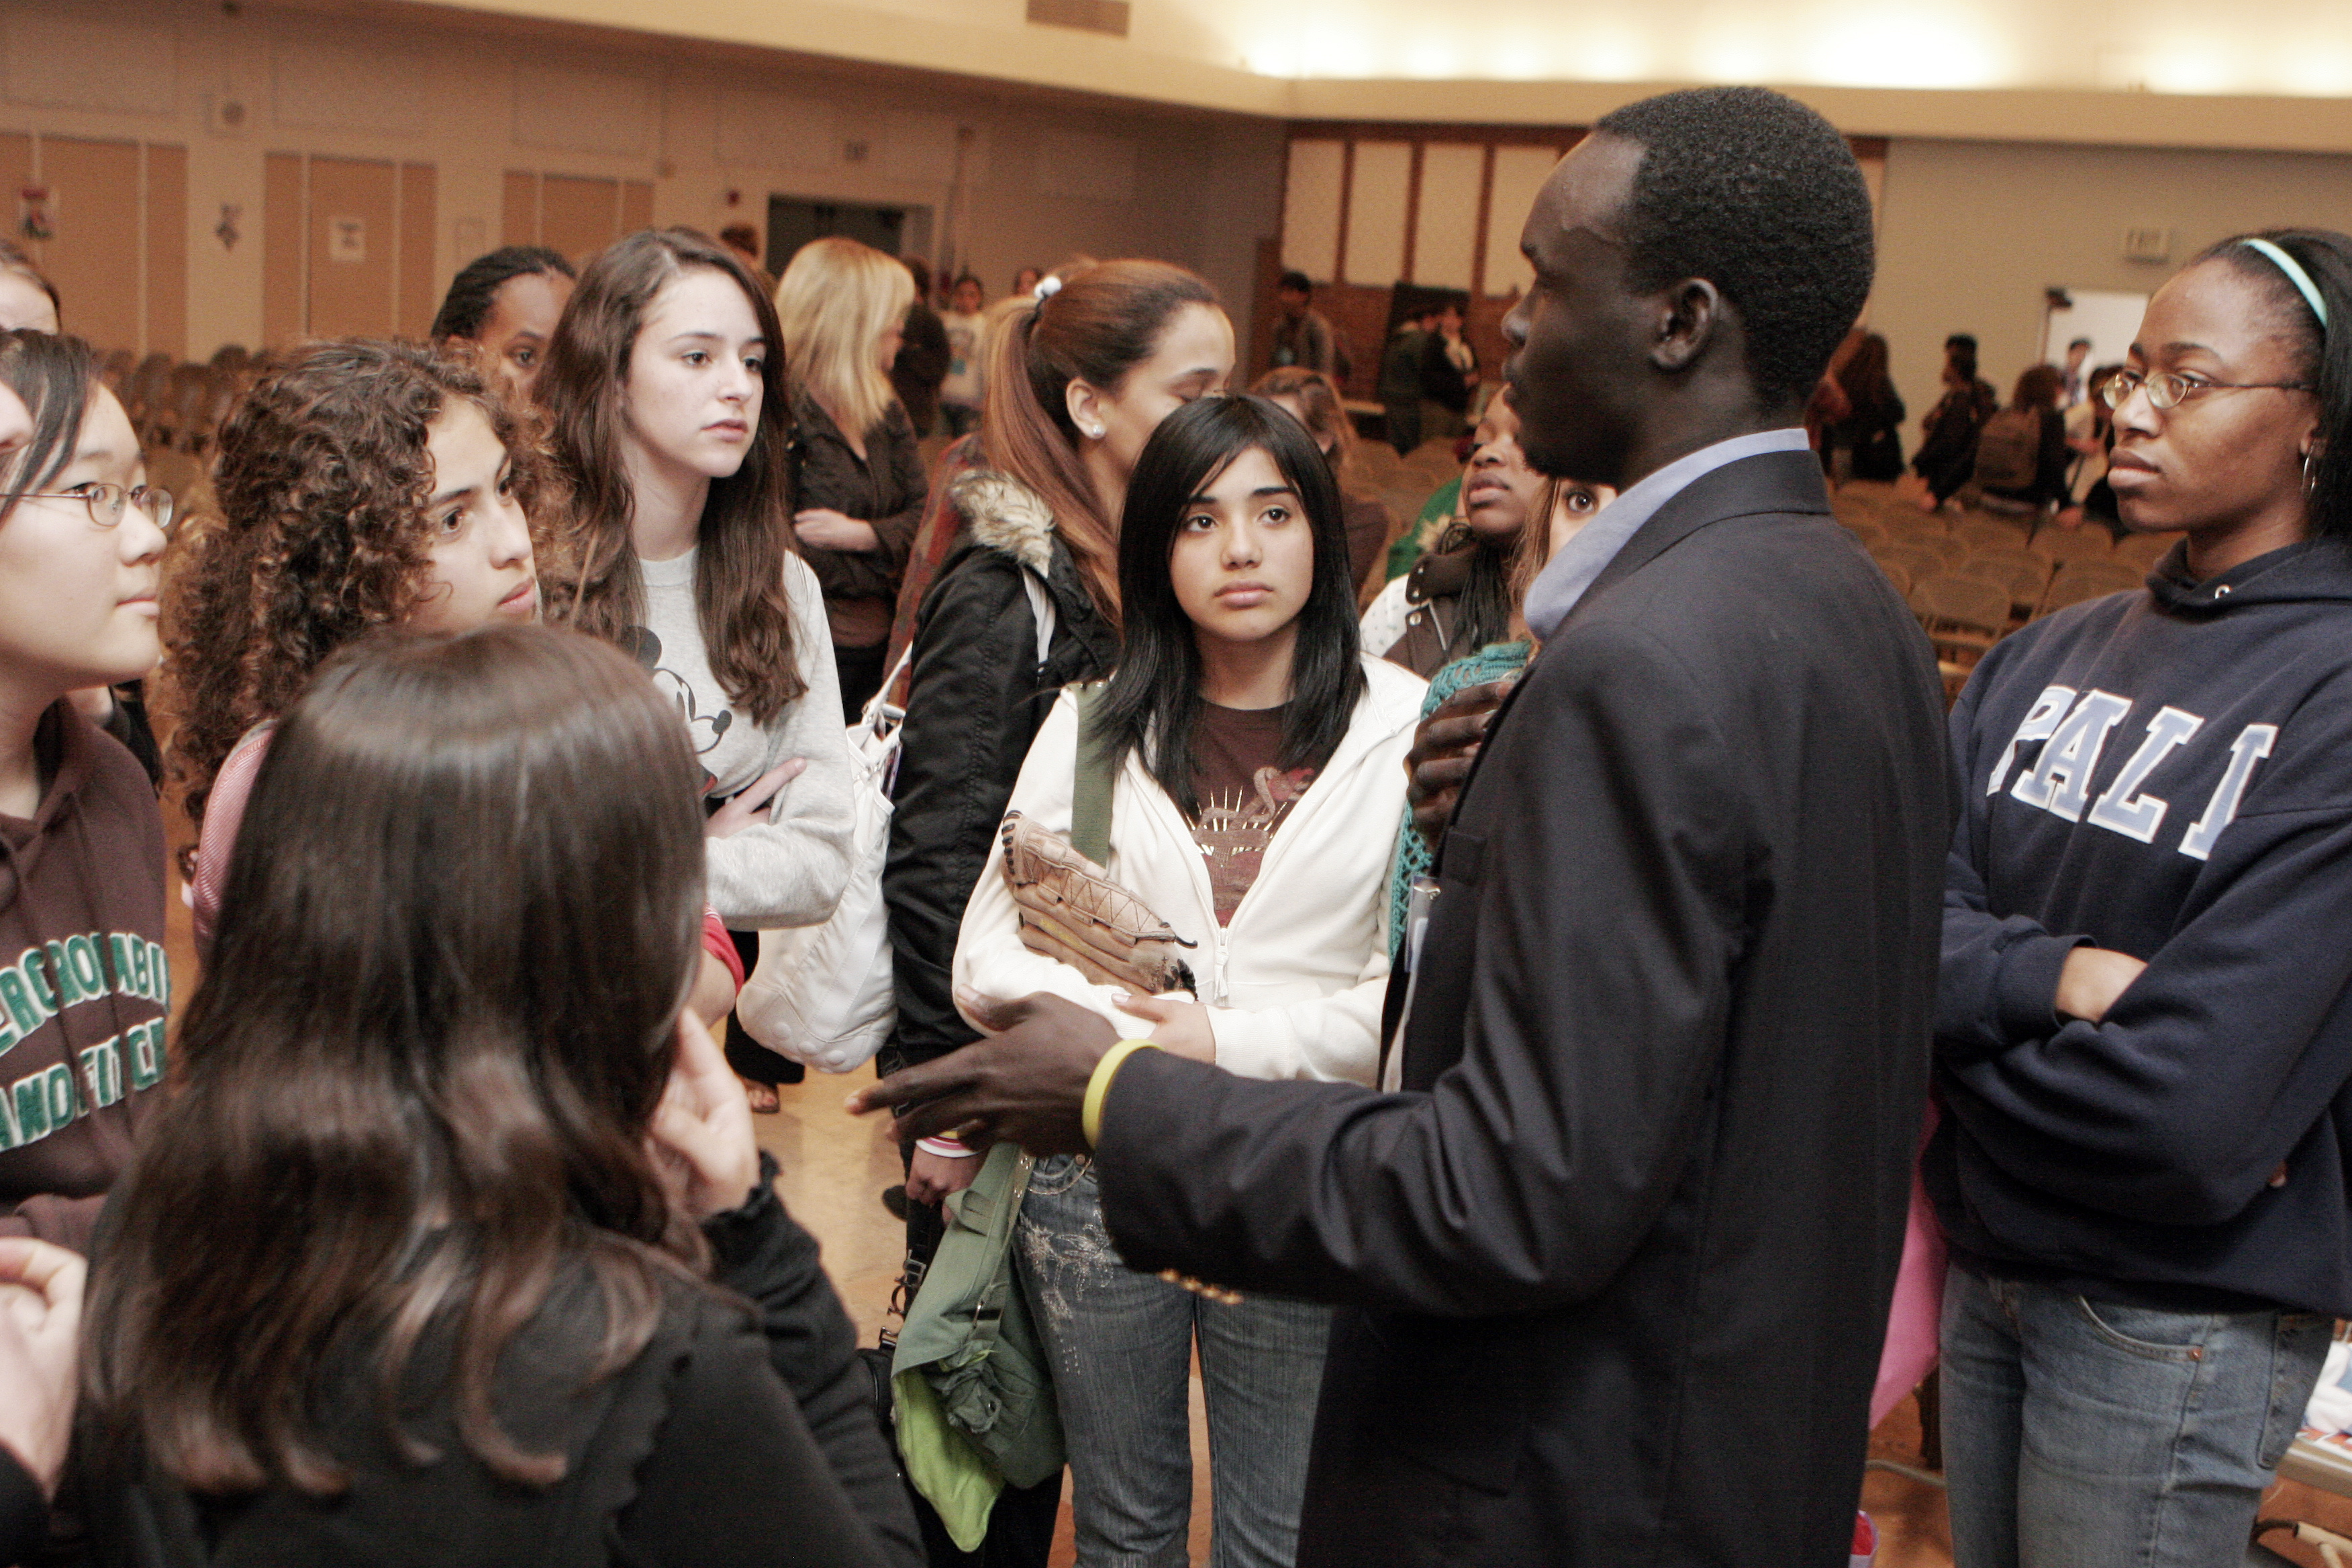 Alephonsion Deng @ Palisades High School